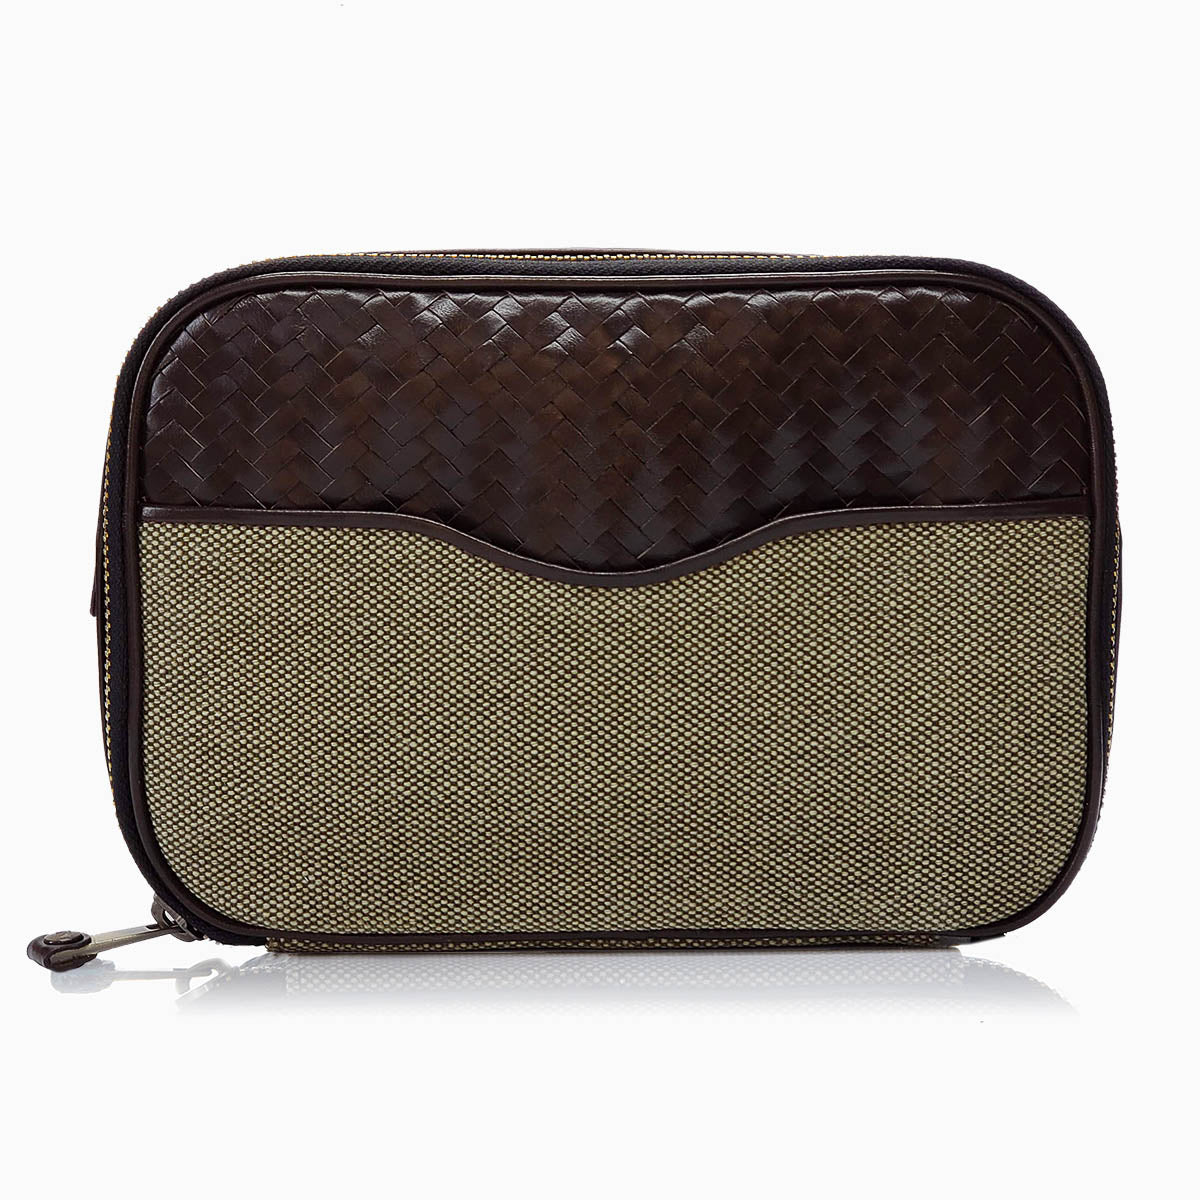 Herringbone Zip Around Wash Bag, Chocolate Brown: Men's Toiletry Travel Bag